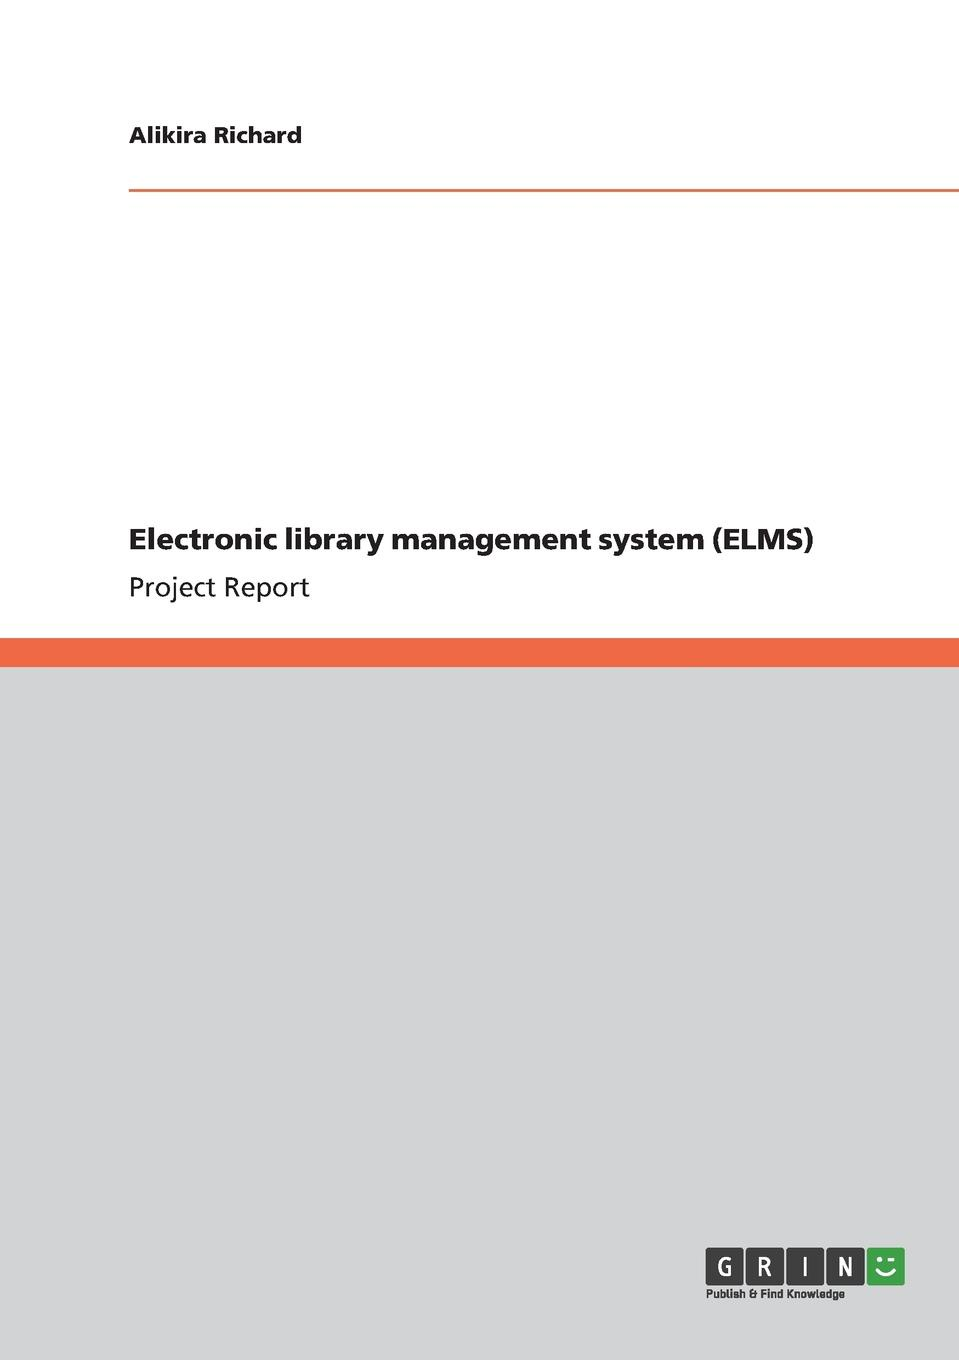 Alikira Richard Electronic library management system (ELMS) the pomodoro technique the life changing time management system